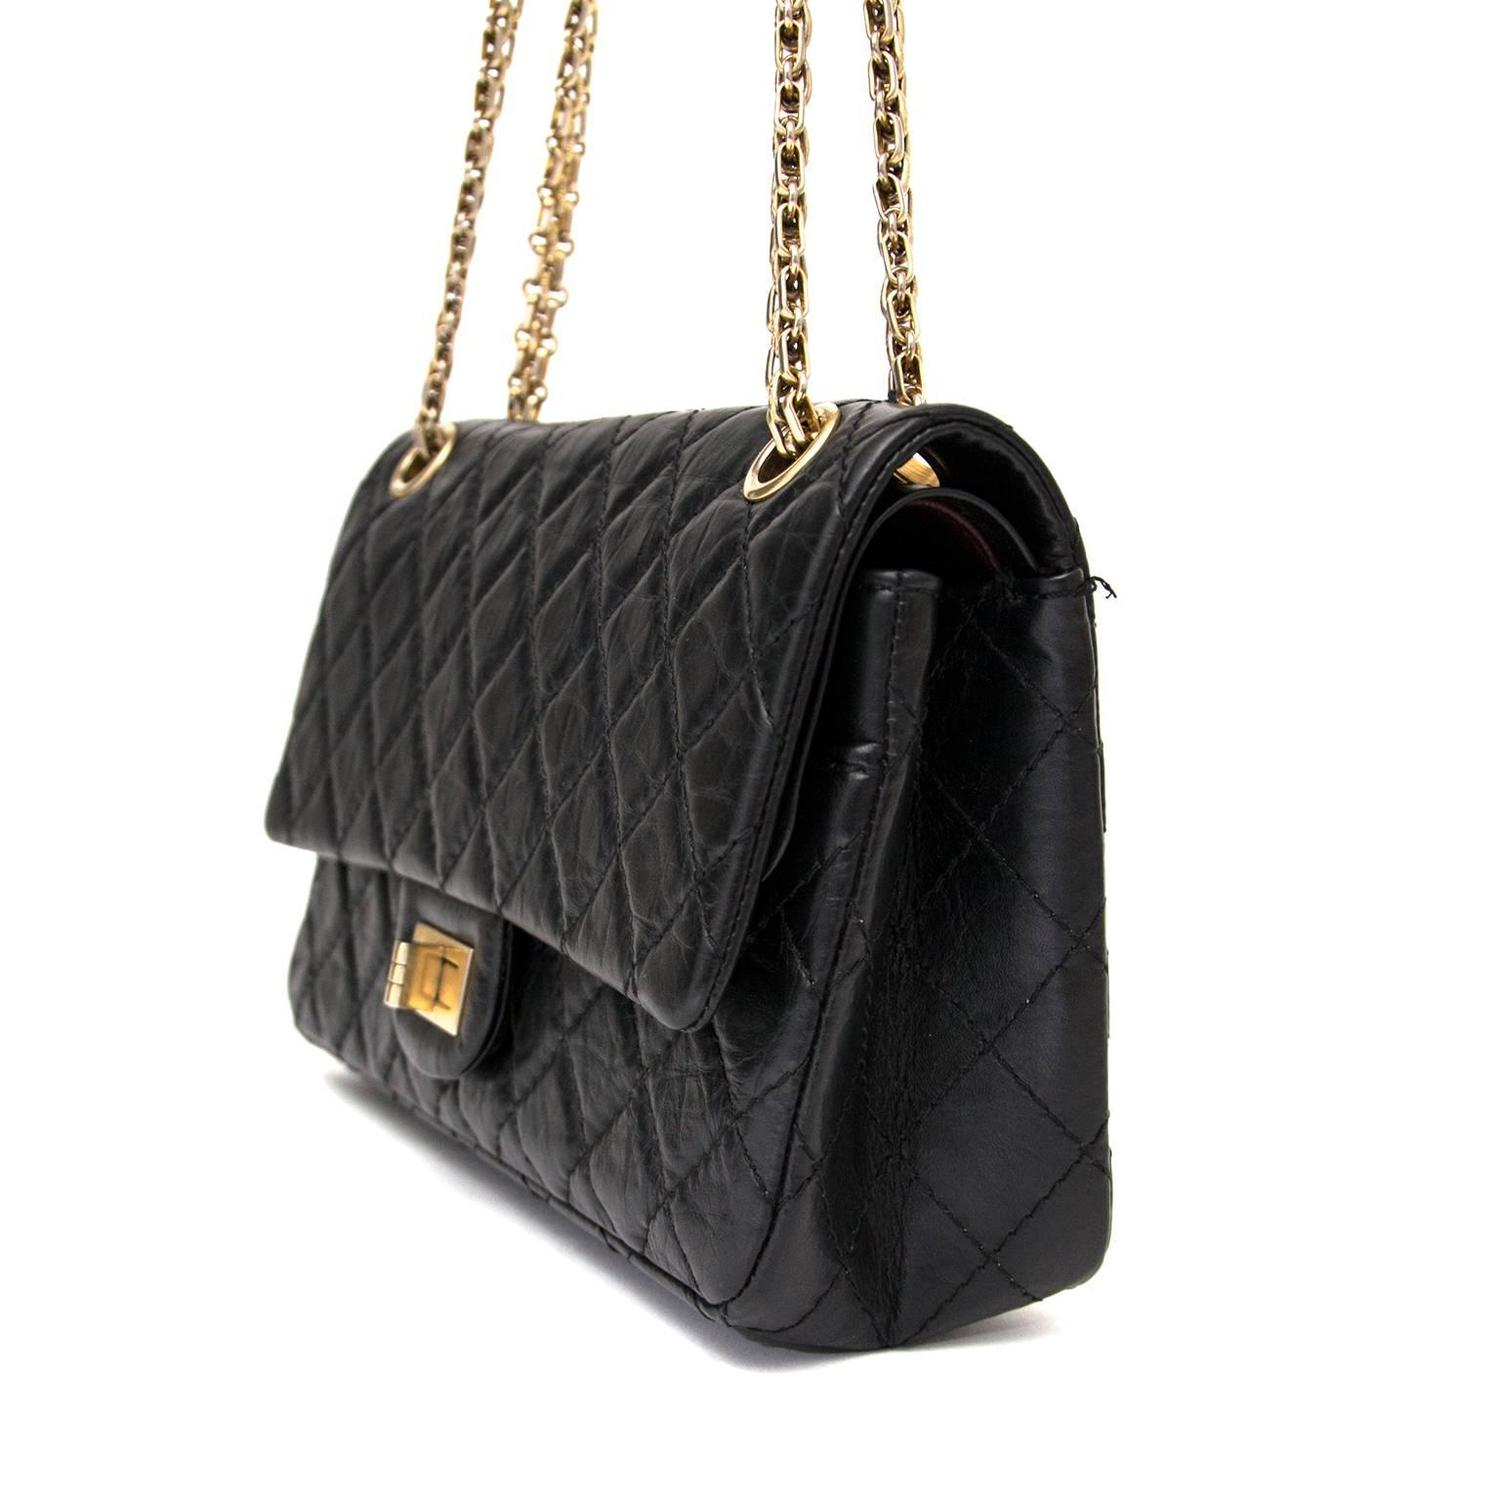 chanel 2 55 reissue 225 flap bag in black at 1stdibs